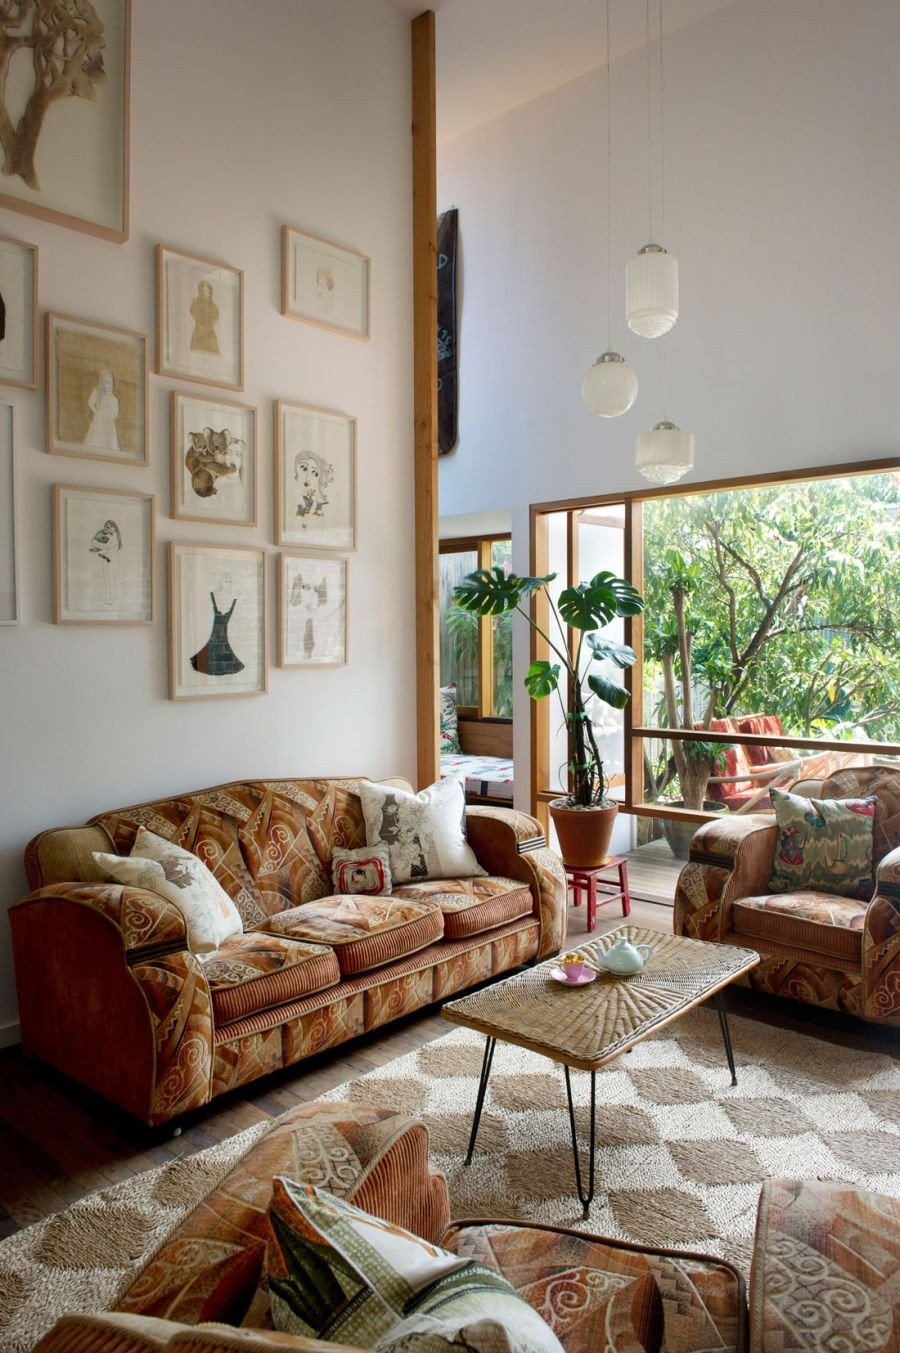 Pictures for Living Room Decor Eclectic Sydney House Presents Colorful and Quirky Interiors